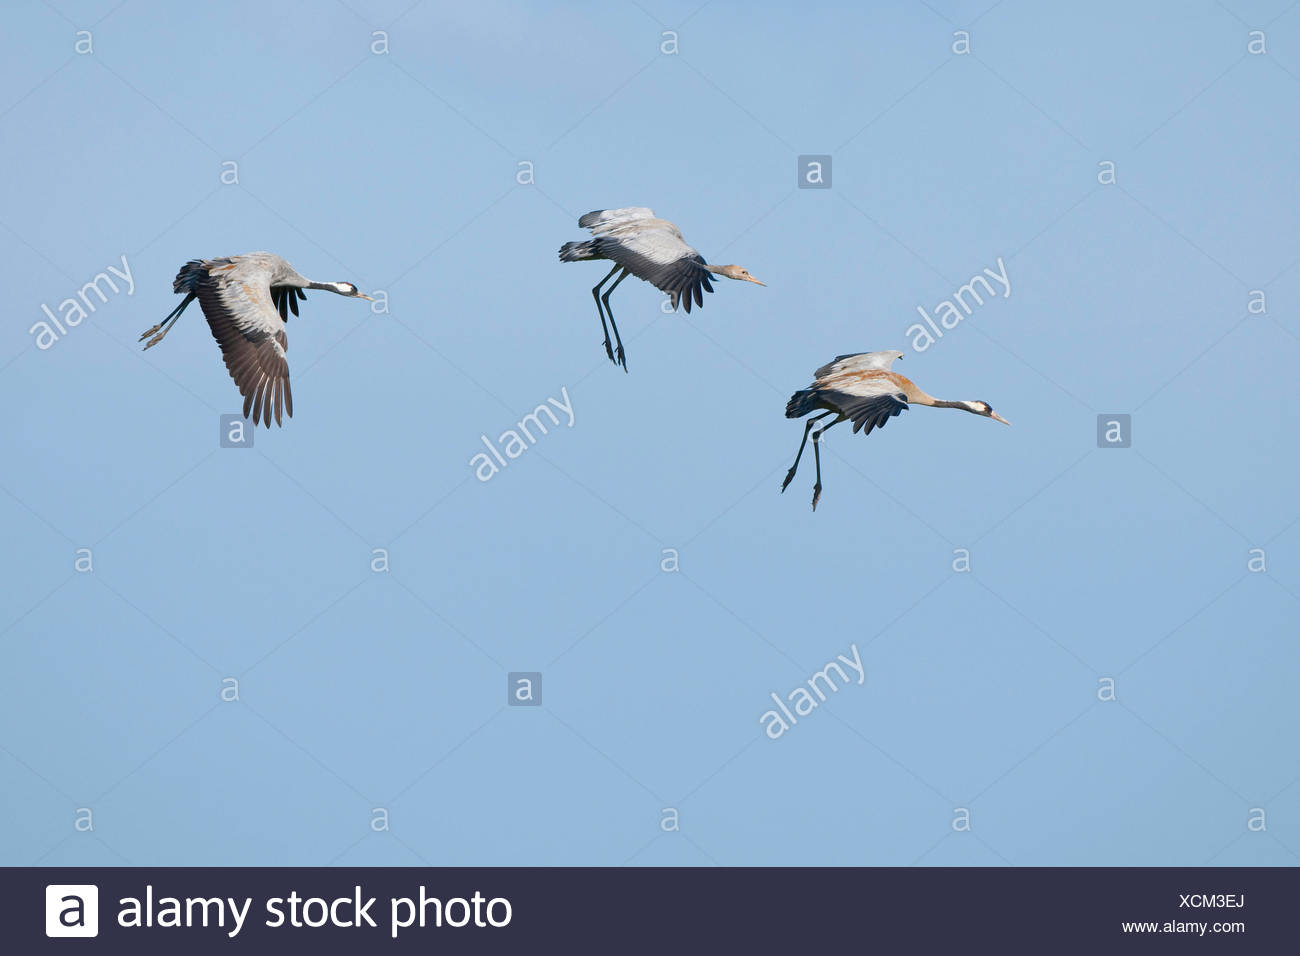 Common Cranes (Grus grus), two adult birds and a young bird, about to land, Mecklenburg-Western Pomerania, Germany Stock Photo